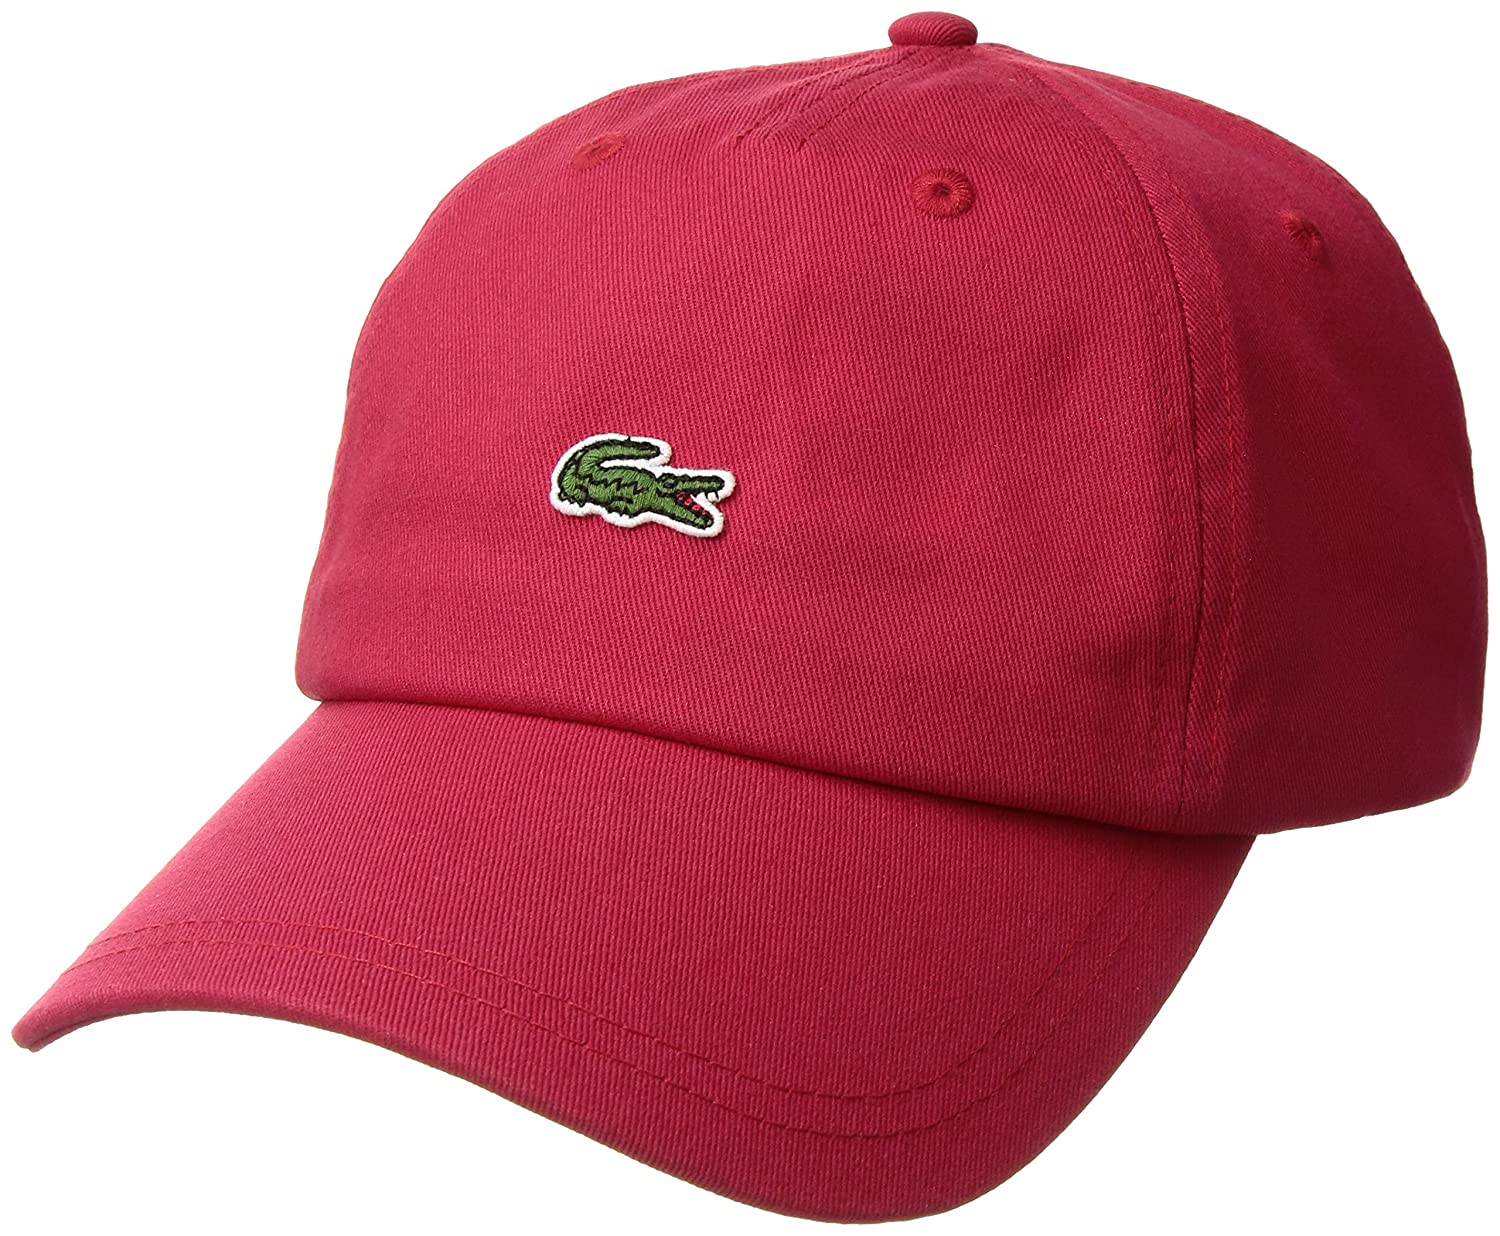 8735f886c Lacoste Men's Embroidered Crocodile Cotton Cap